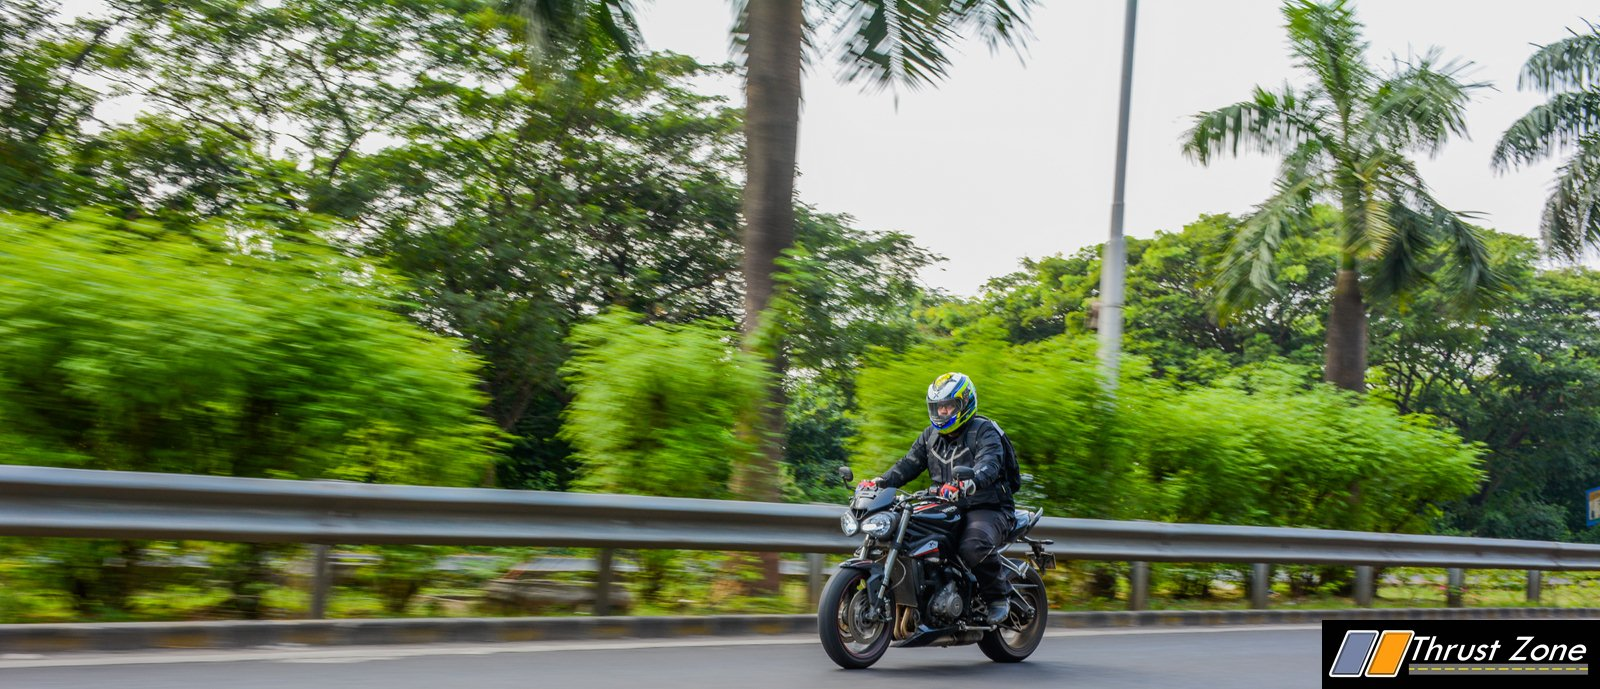 2018-Street-Triple-RS-India-Review-18